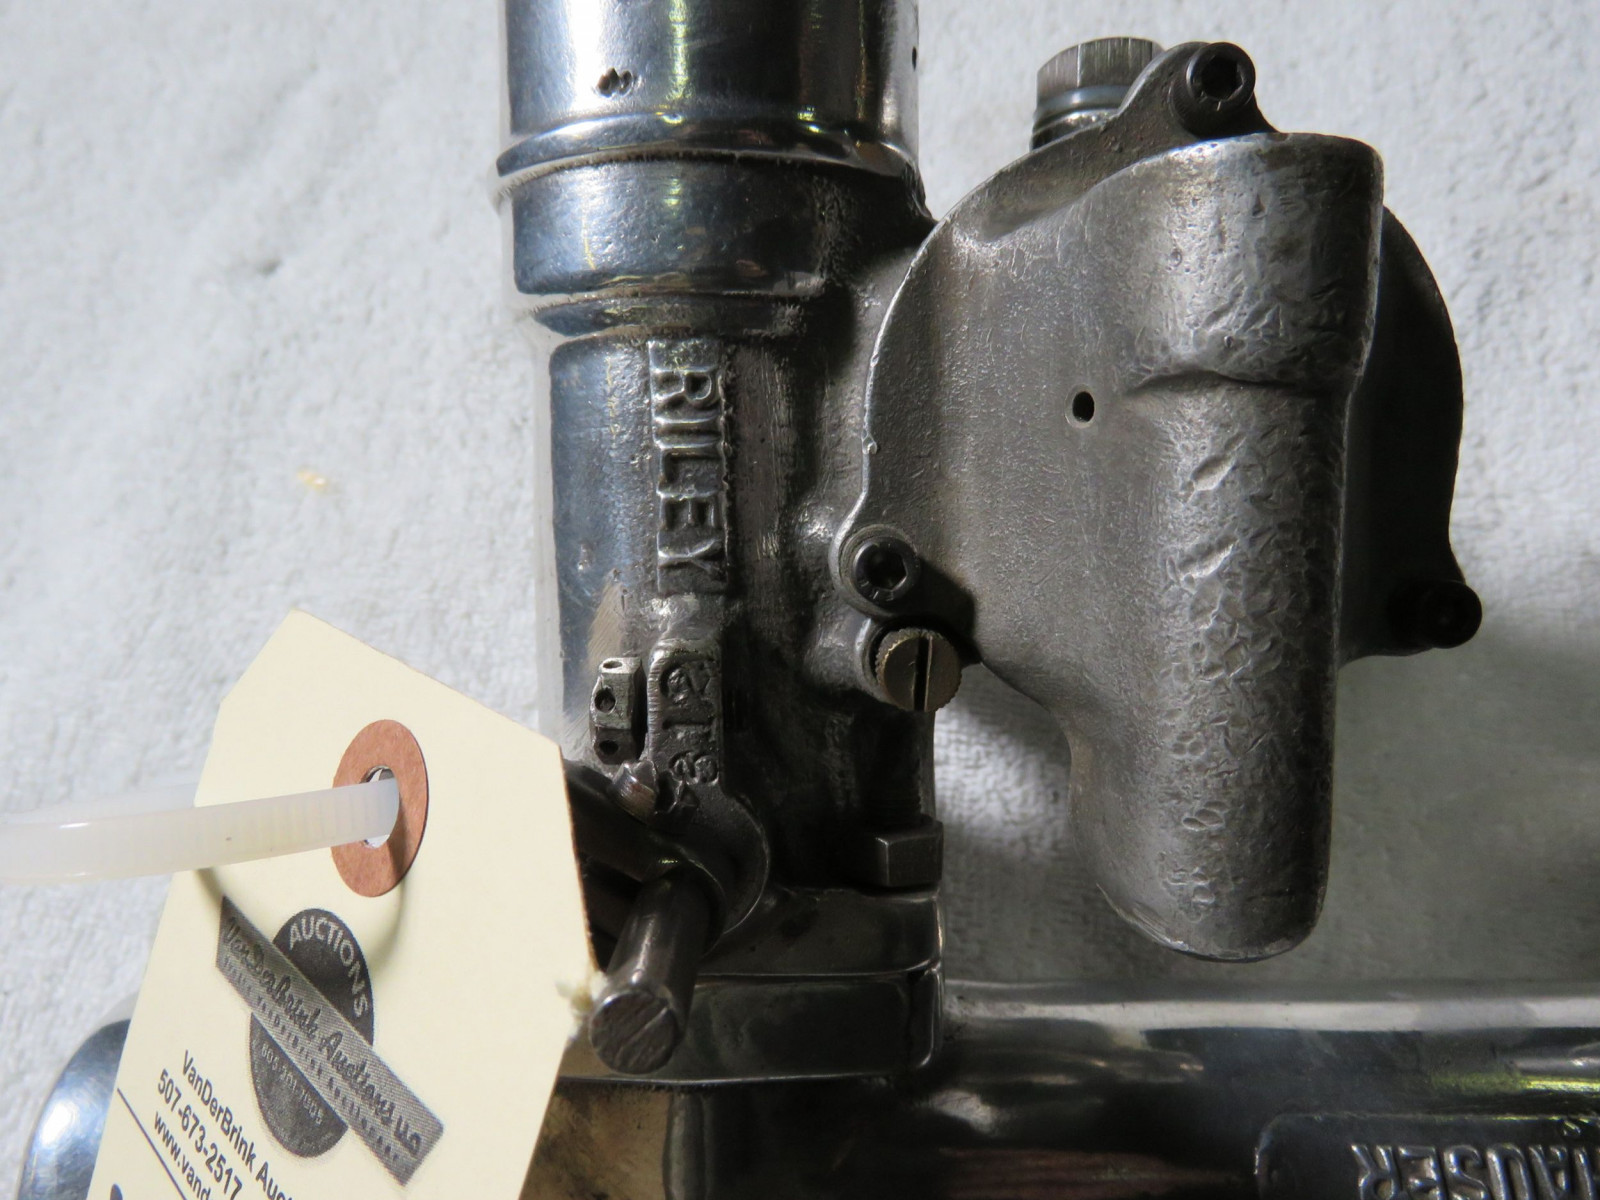 Rare Offenhauser Aluminum Intake with Riley Carbs - Image 3